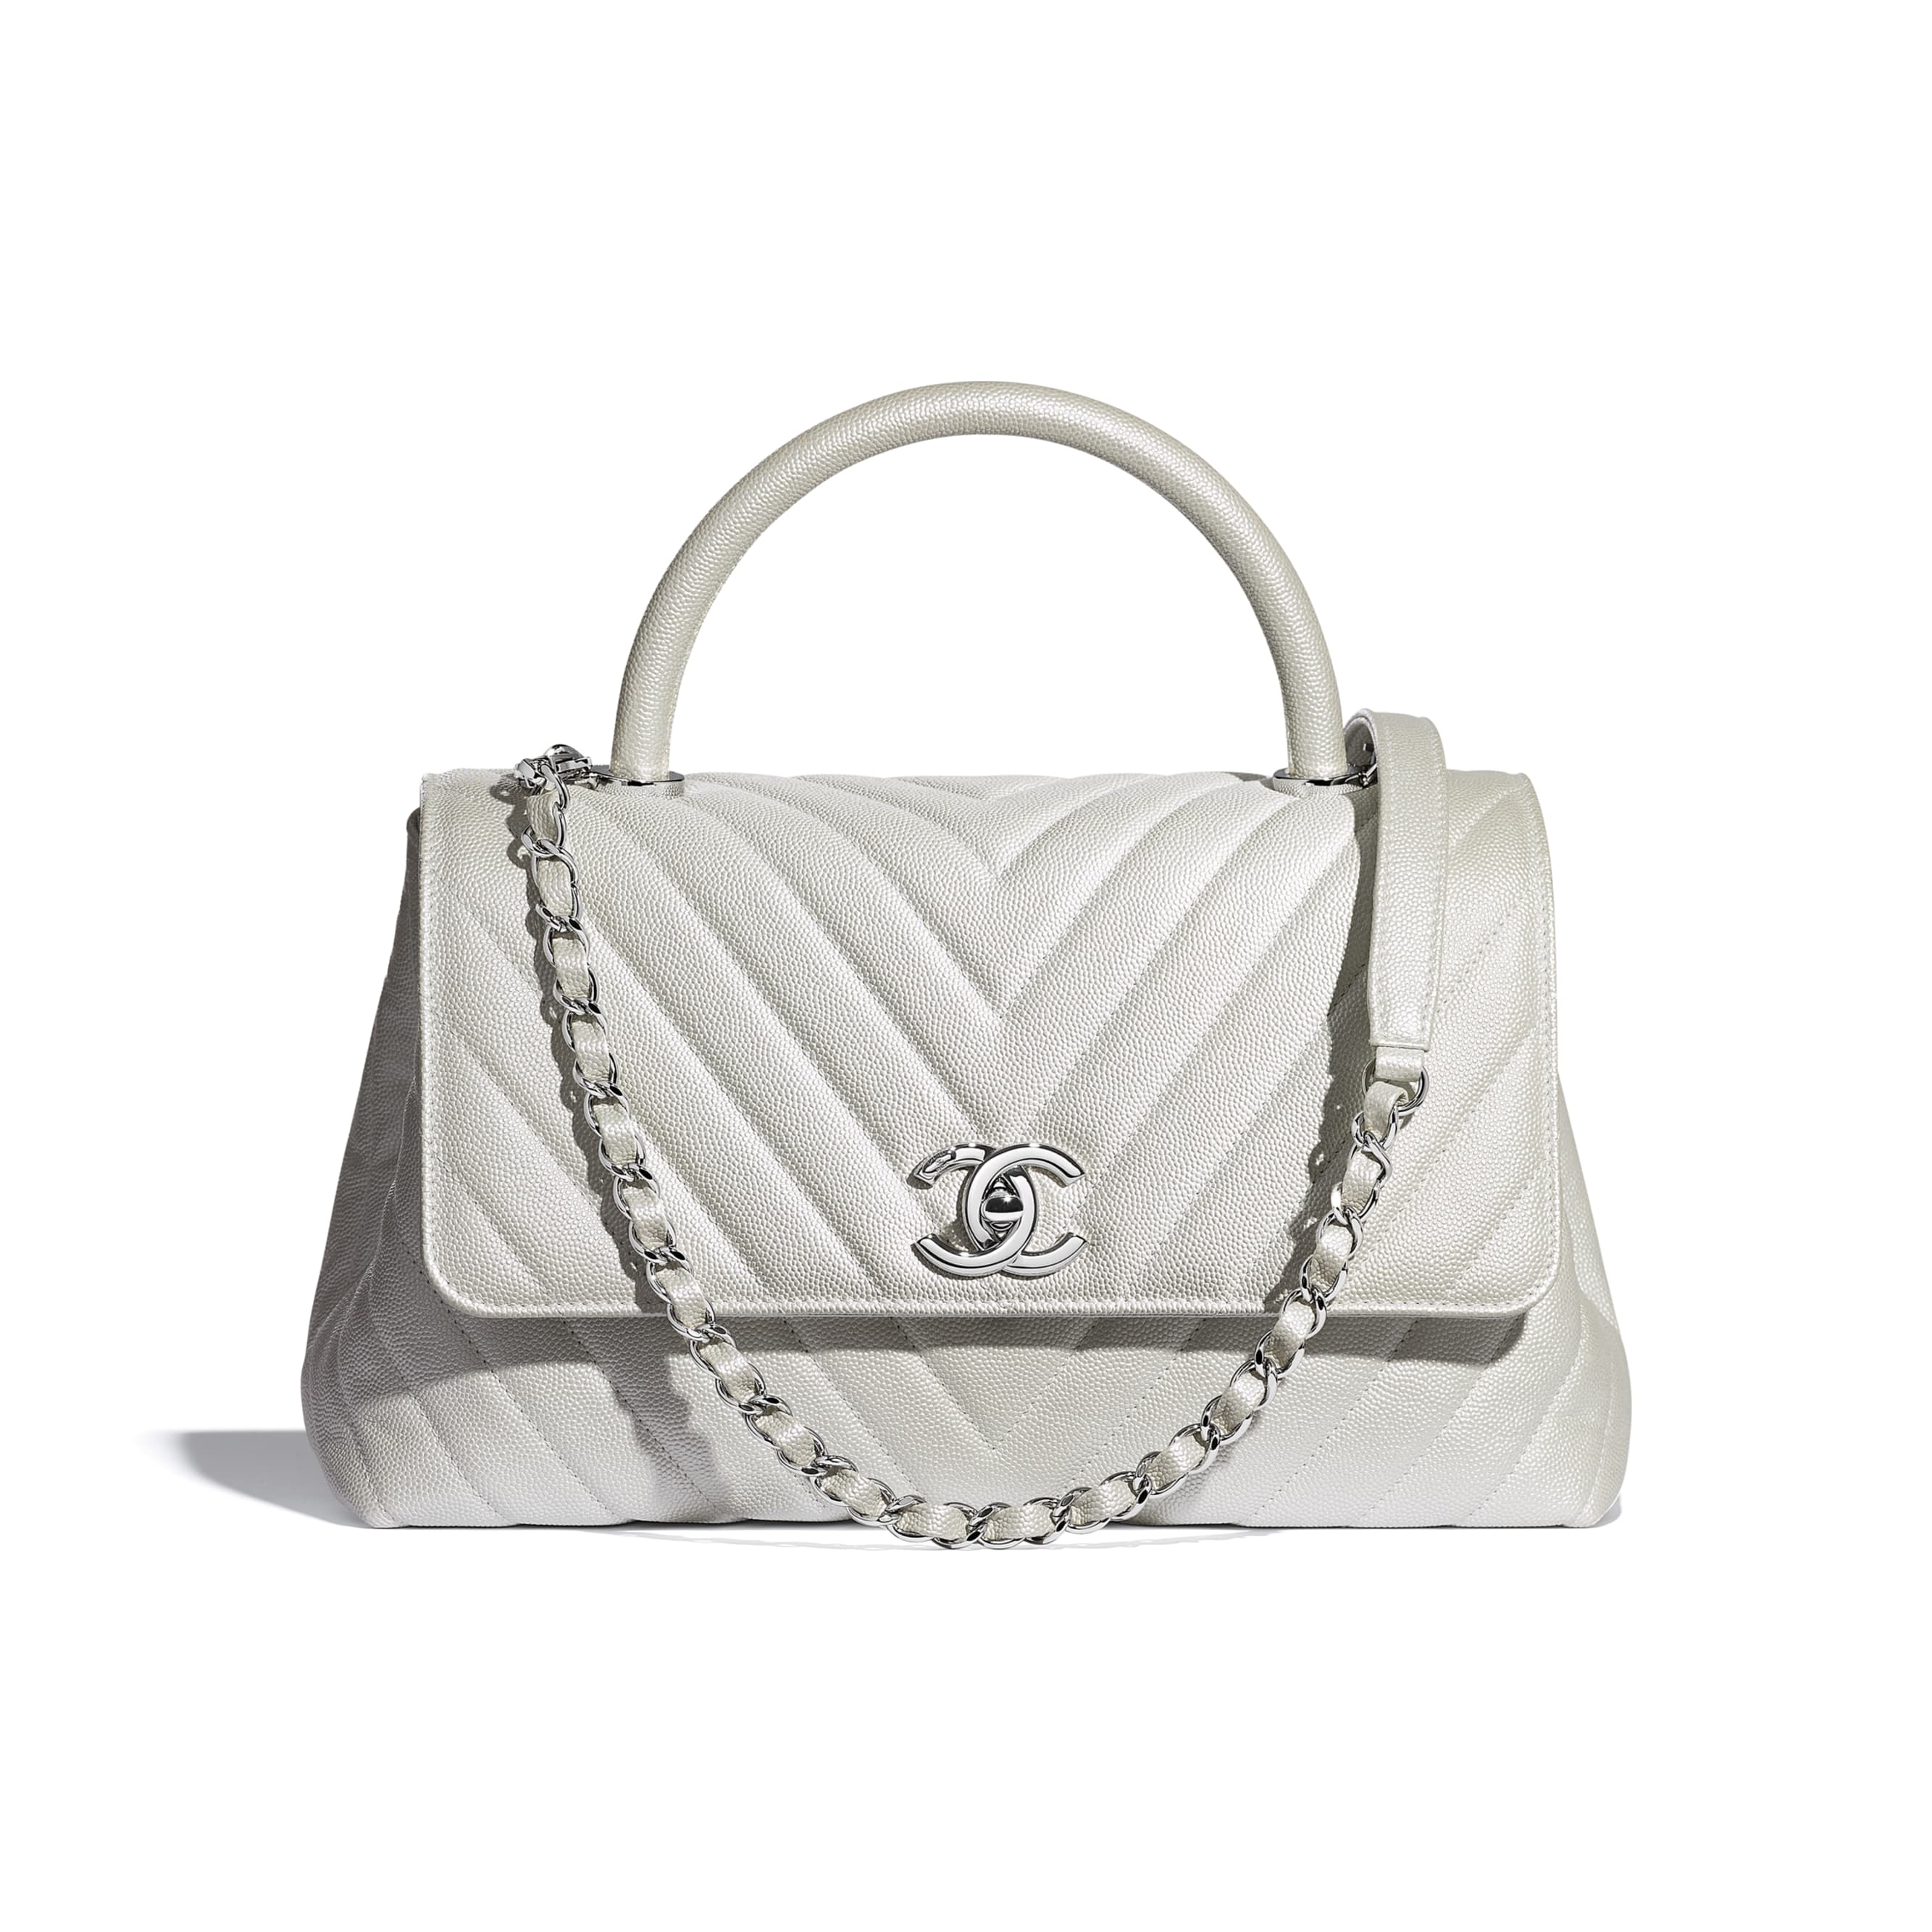 Flap Bag With Top Handle - White - Iridescent Grained Calfskin & Silver-Tone Metal - Default view - see standard sized version